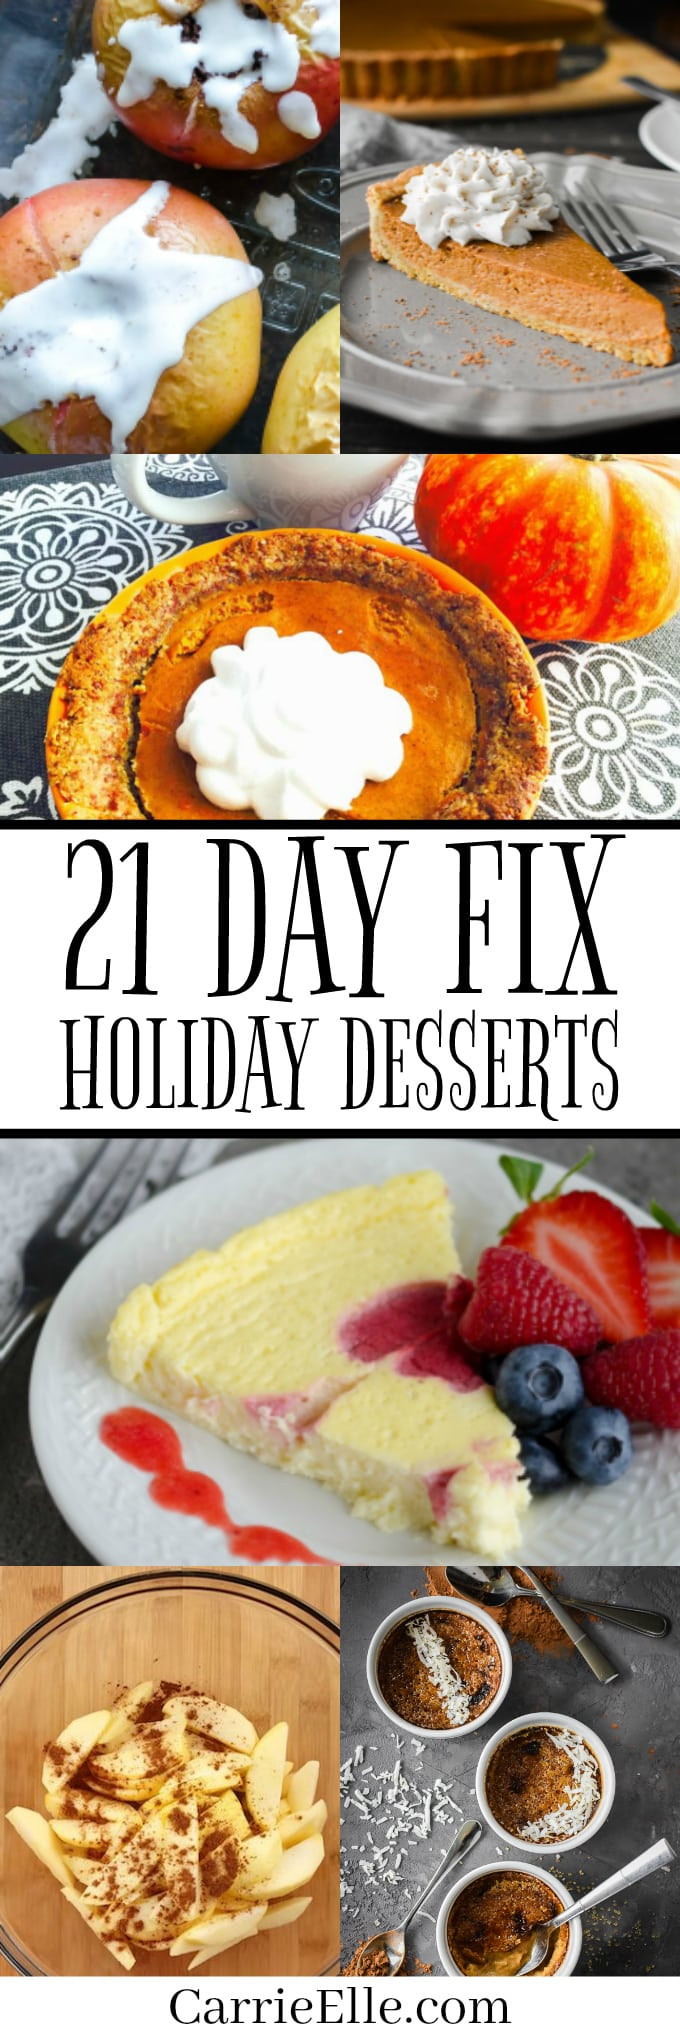 21 Day Fix Dessert Recipes  21 Day Fix Holiday Desserts Carrie Elle